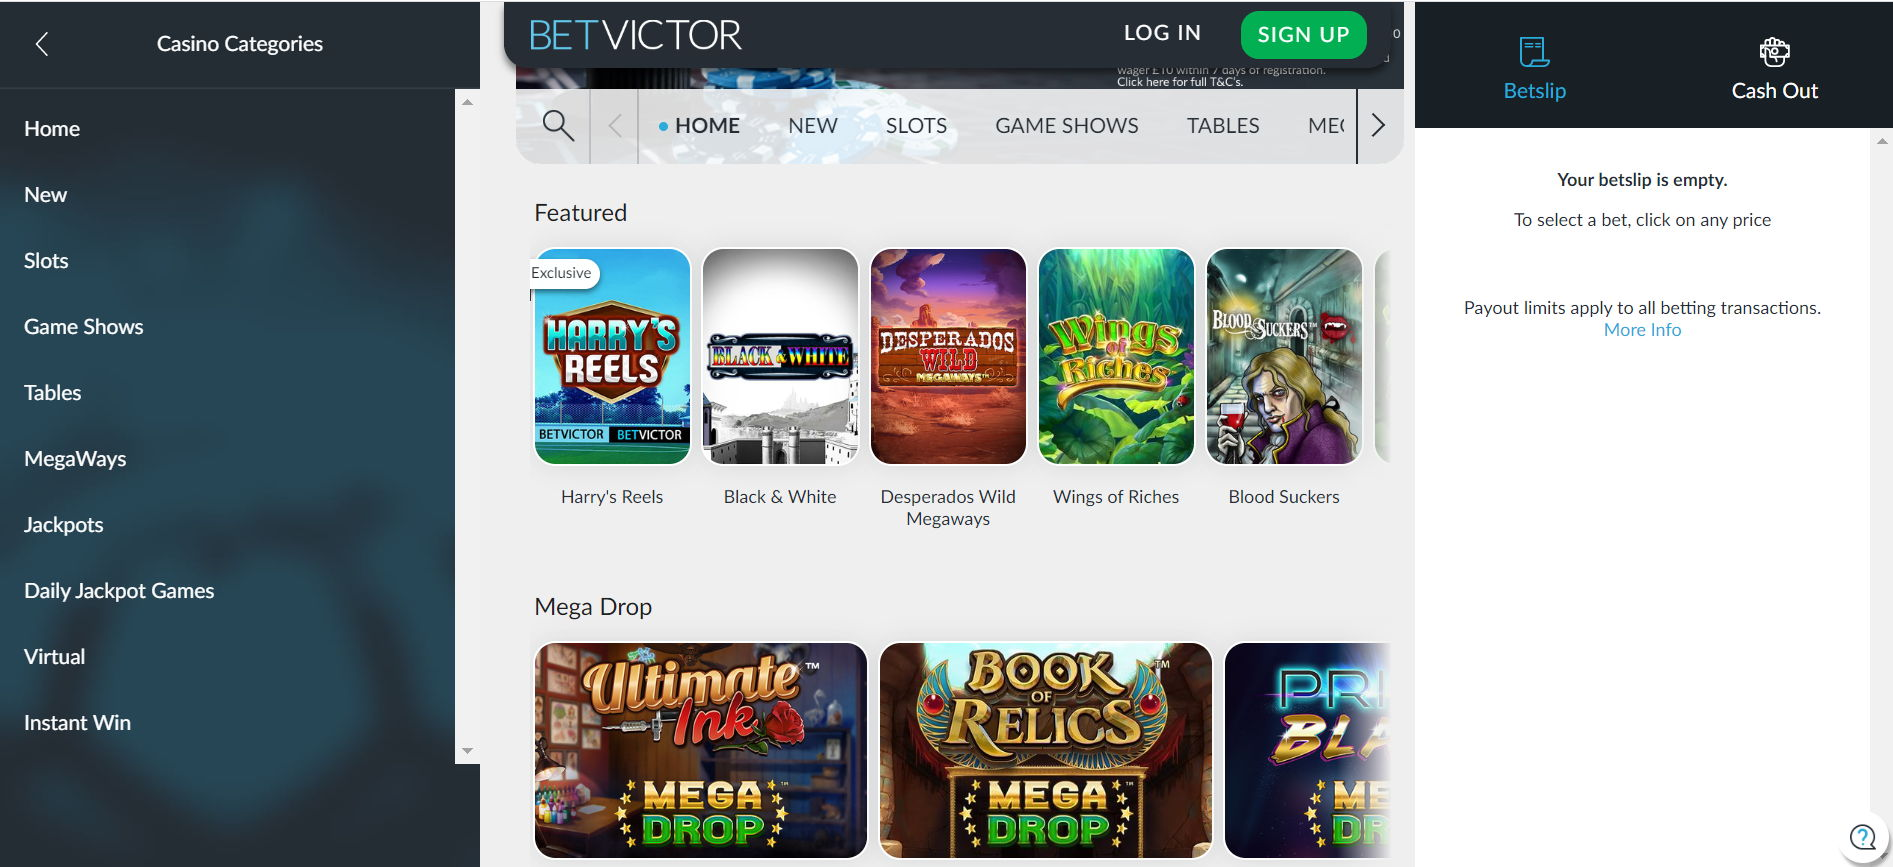 The Online Casino Interface Offered at BetVictor Casino